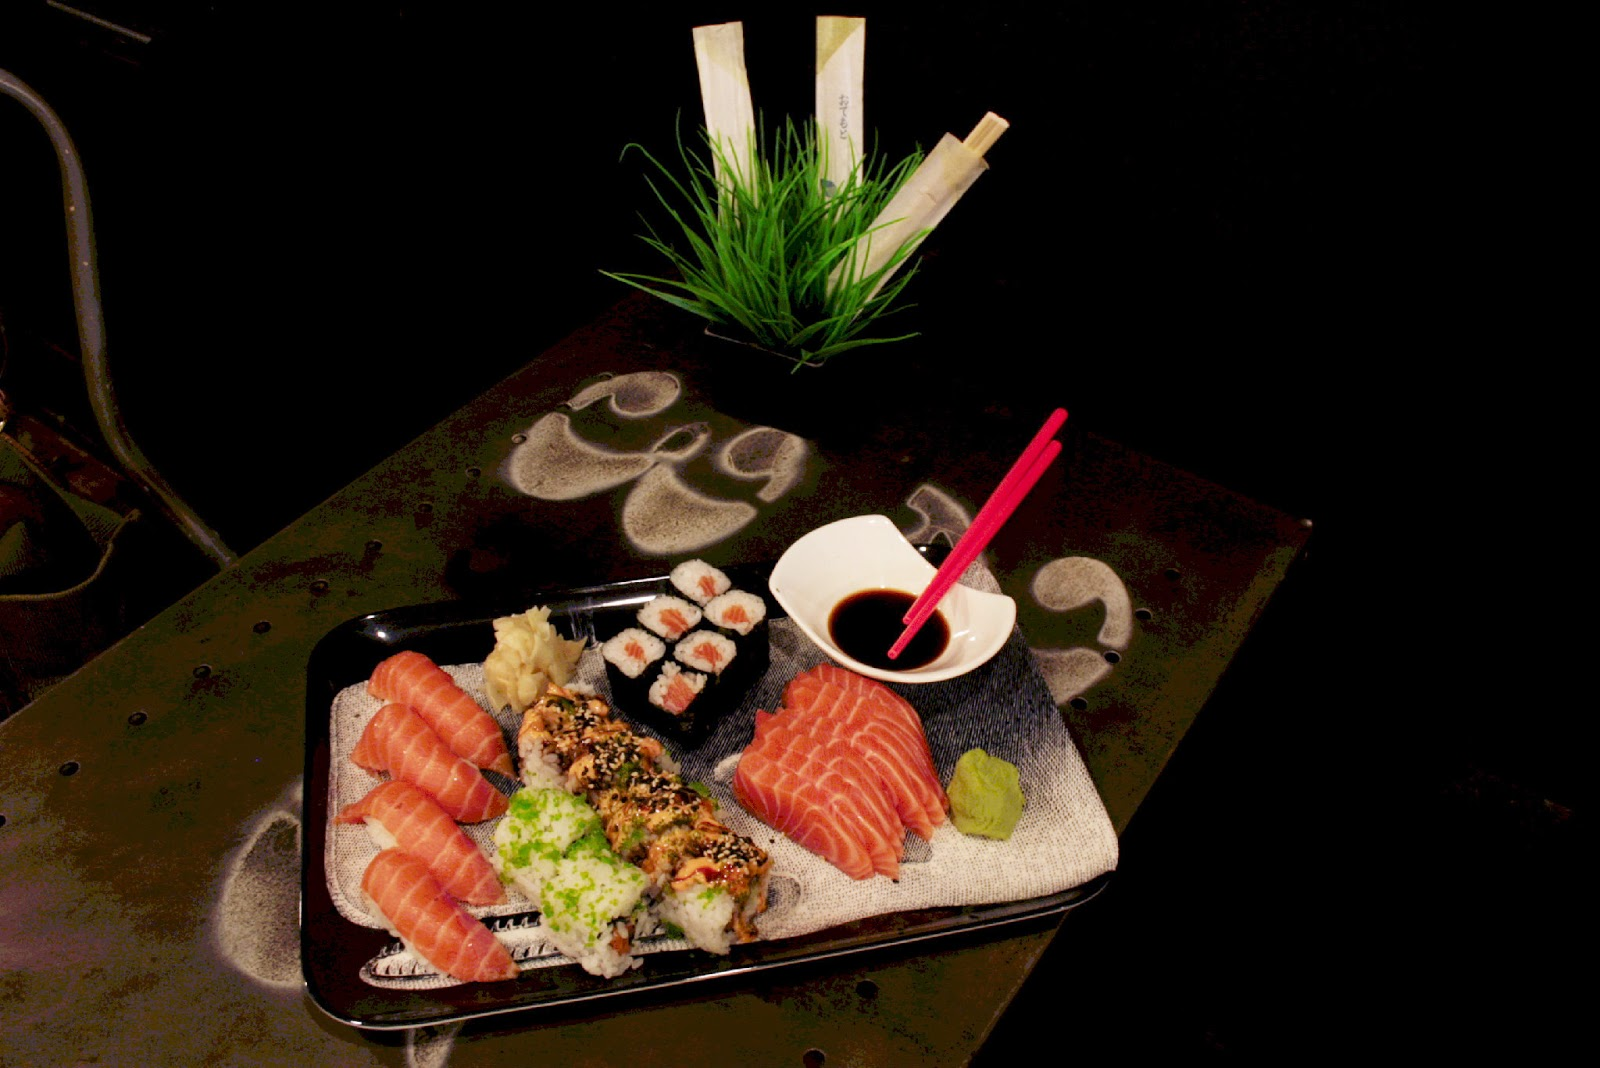 A freshly rolled selection of sushi from Zero juice and sushi in Berkhamsted